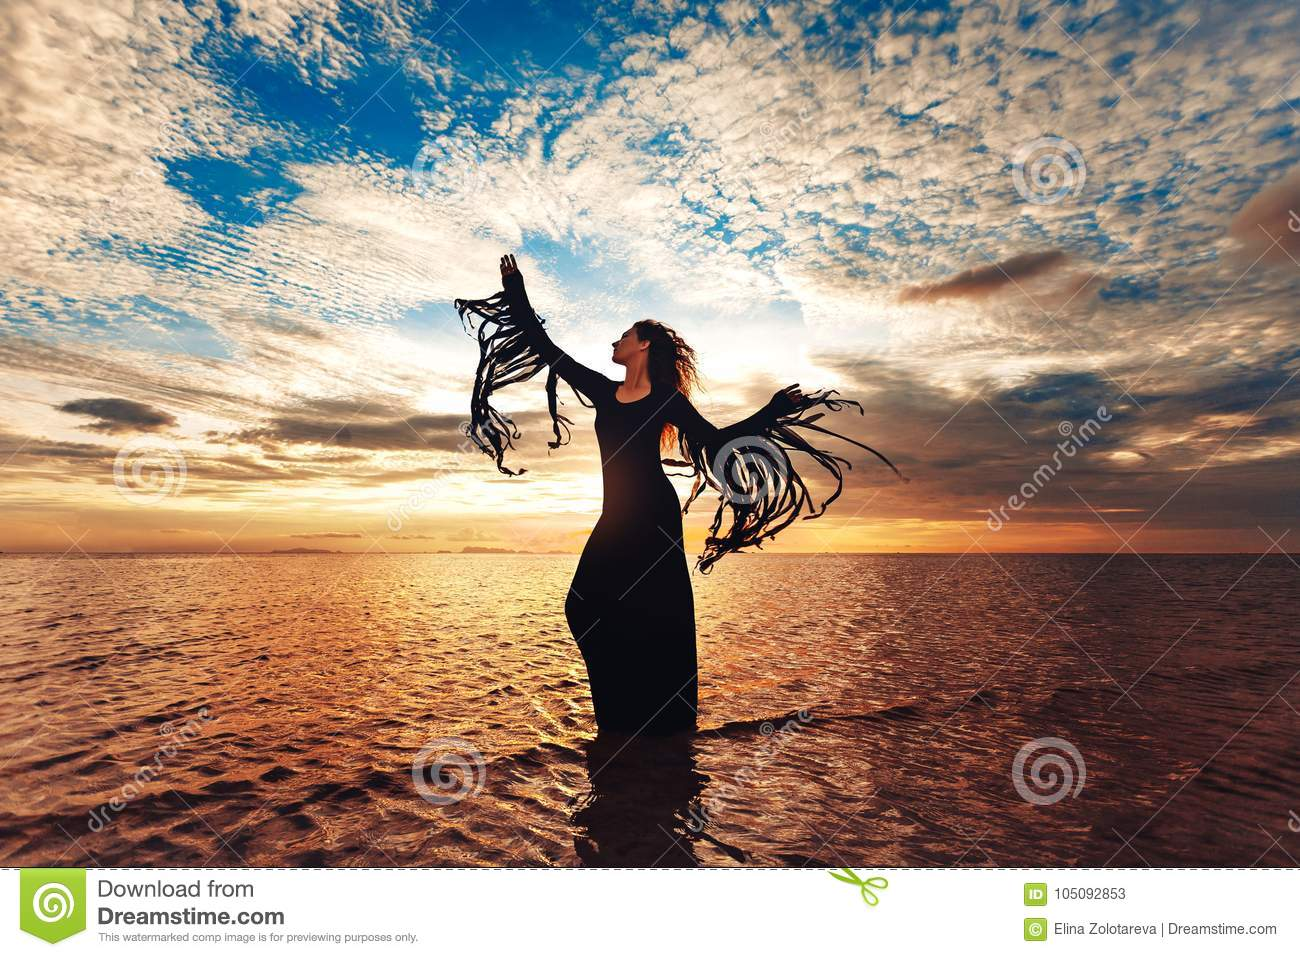 Download Elegant Woman Dancing On Water. Sunset And Silhouette Stock Image - Image of dancing, mysterious: 105092853